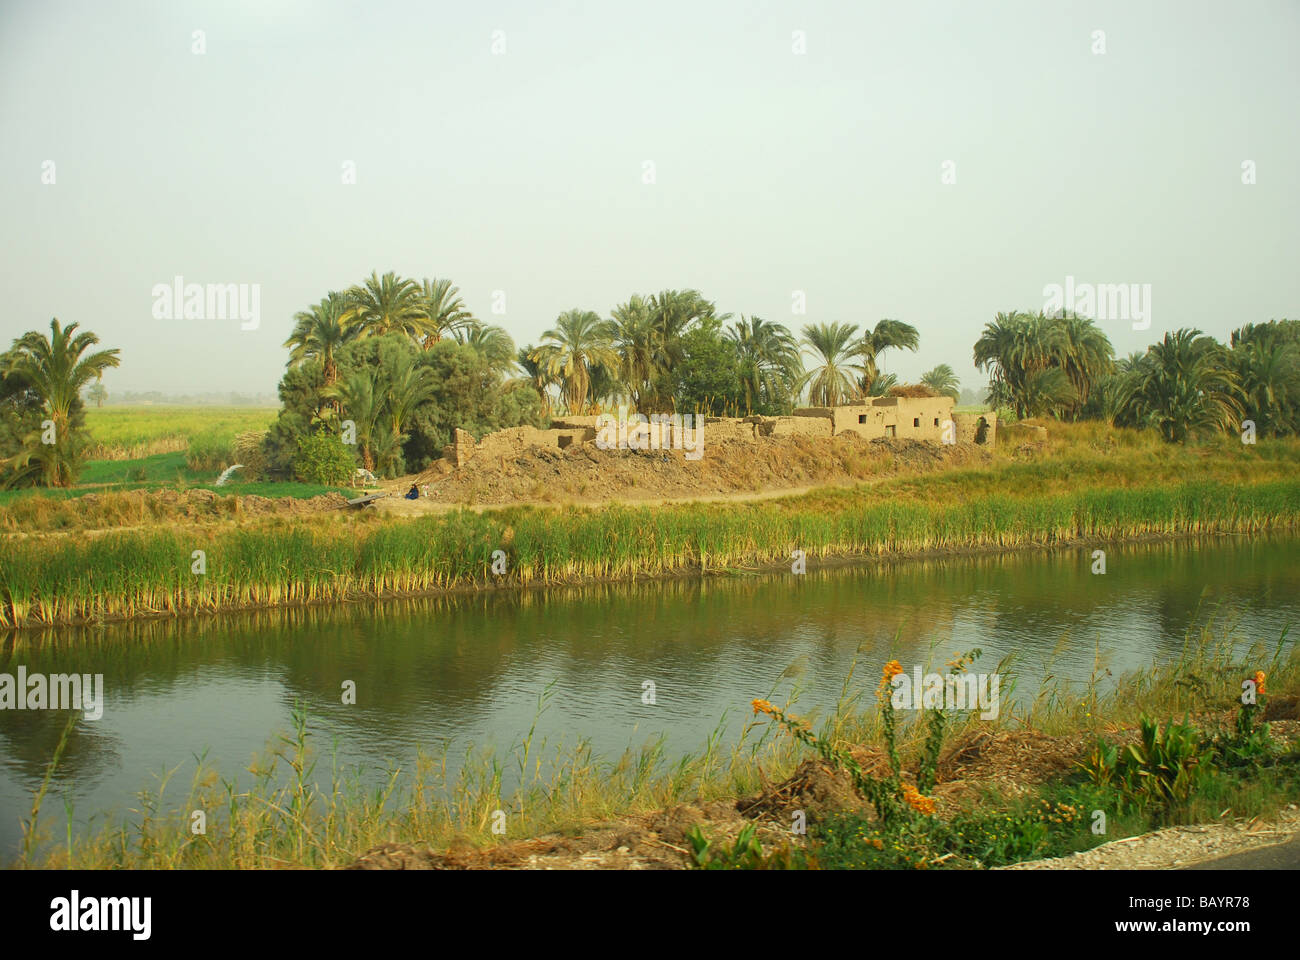 Nile River Valley Stock Photos Amp Nile River Valley Stock Images